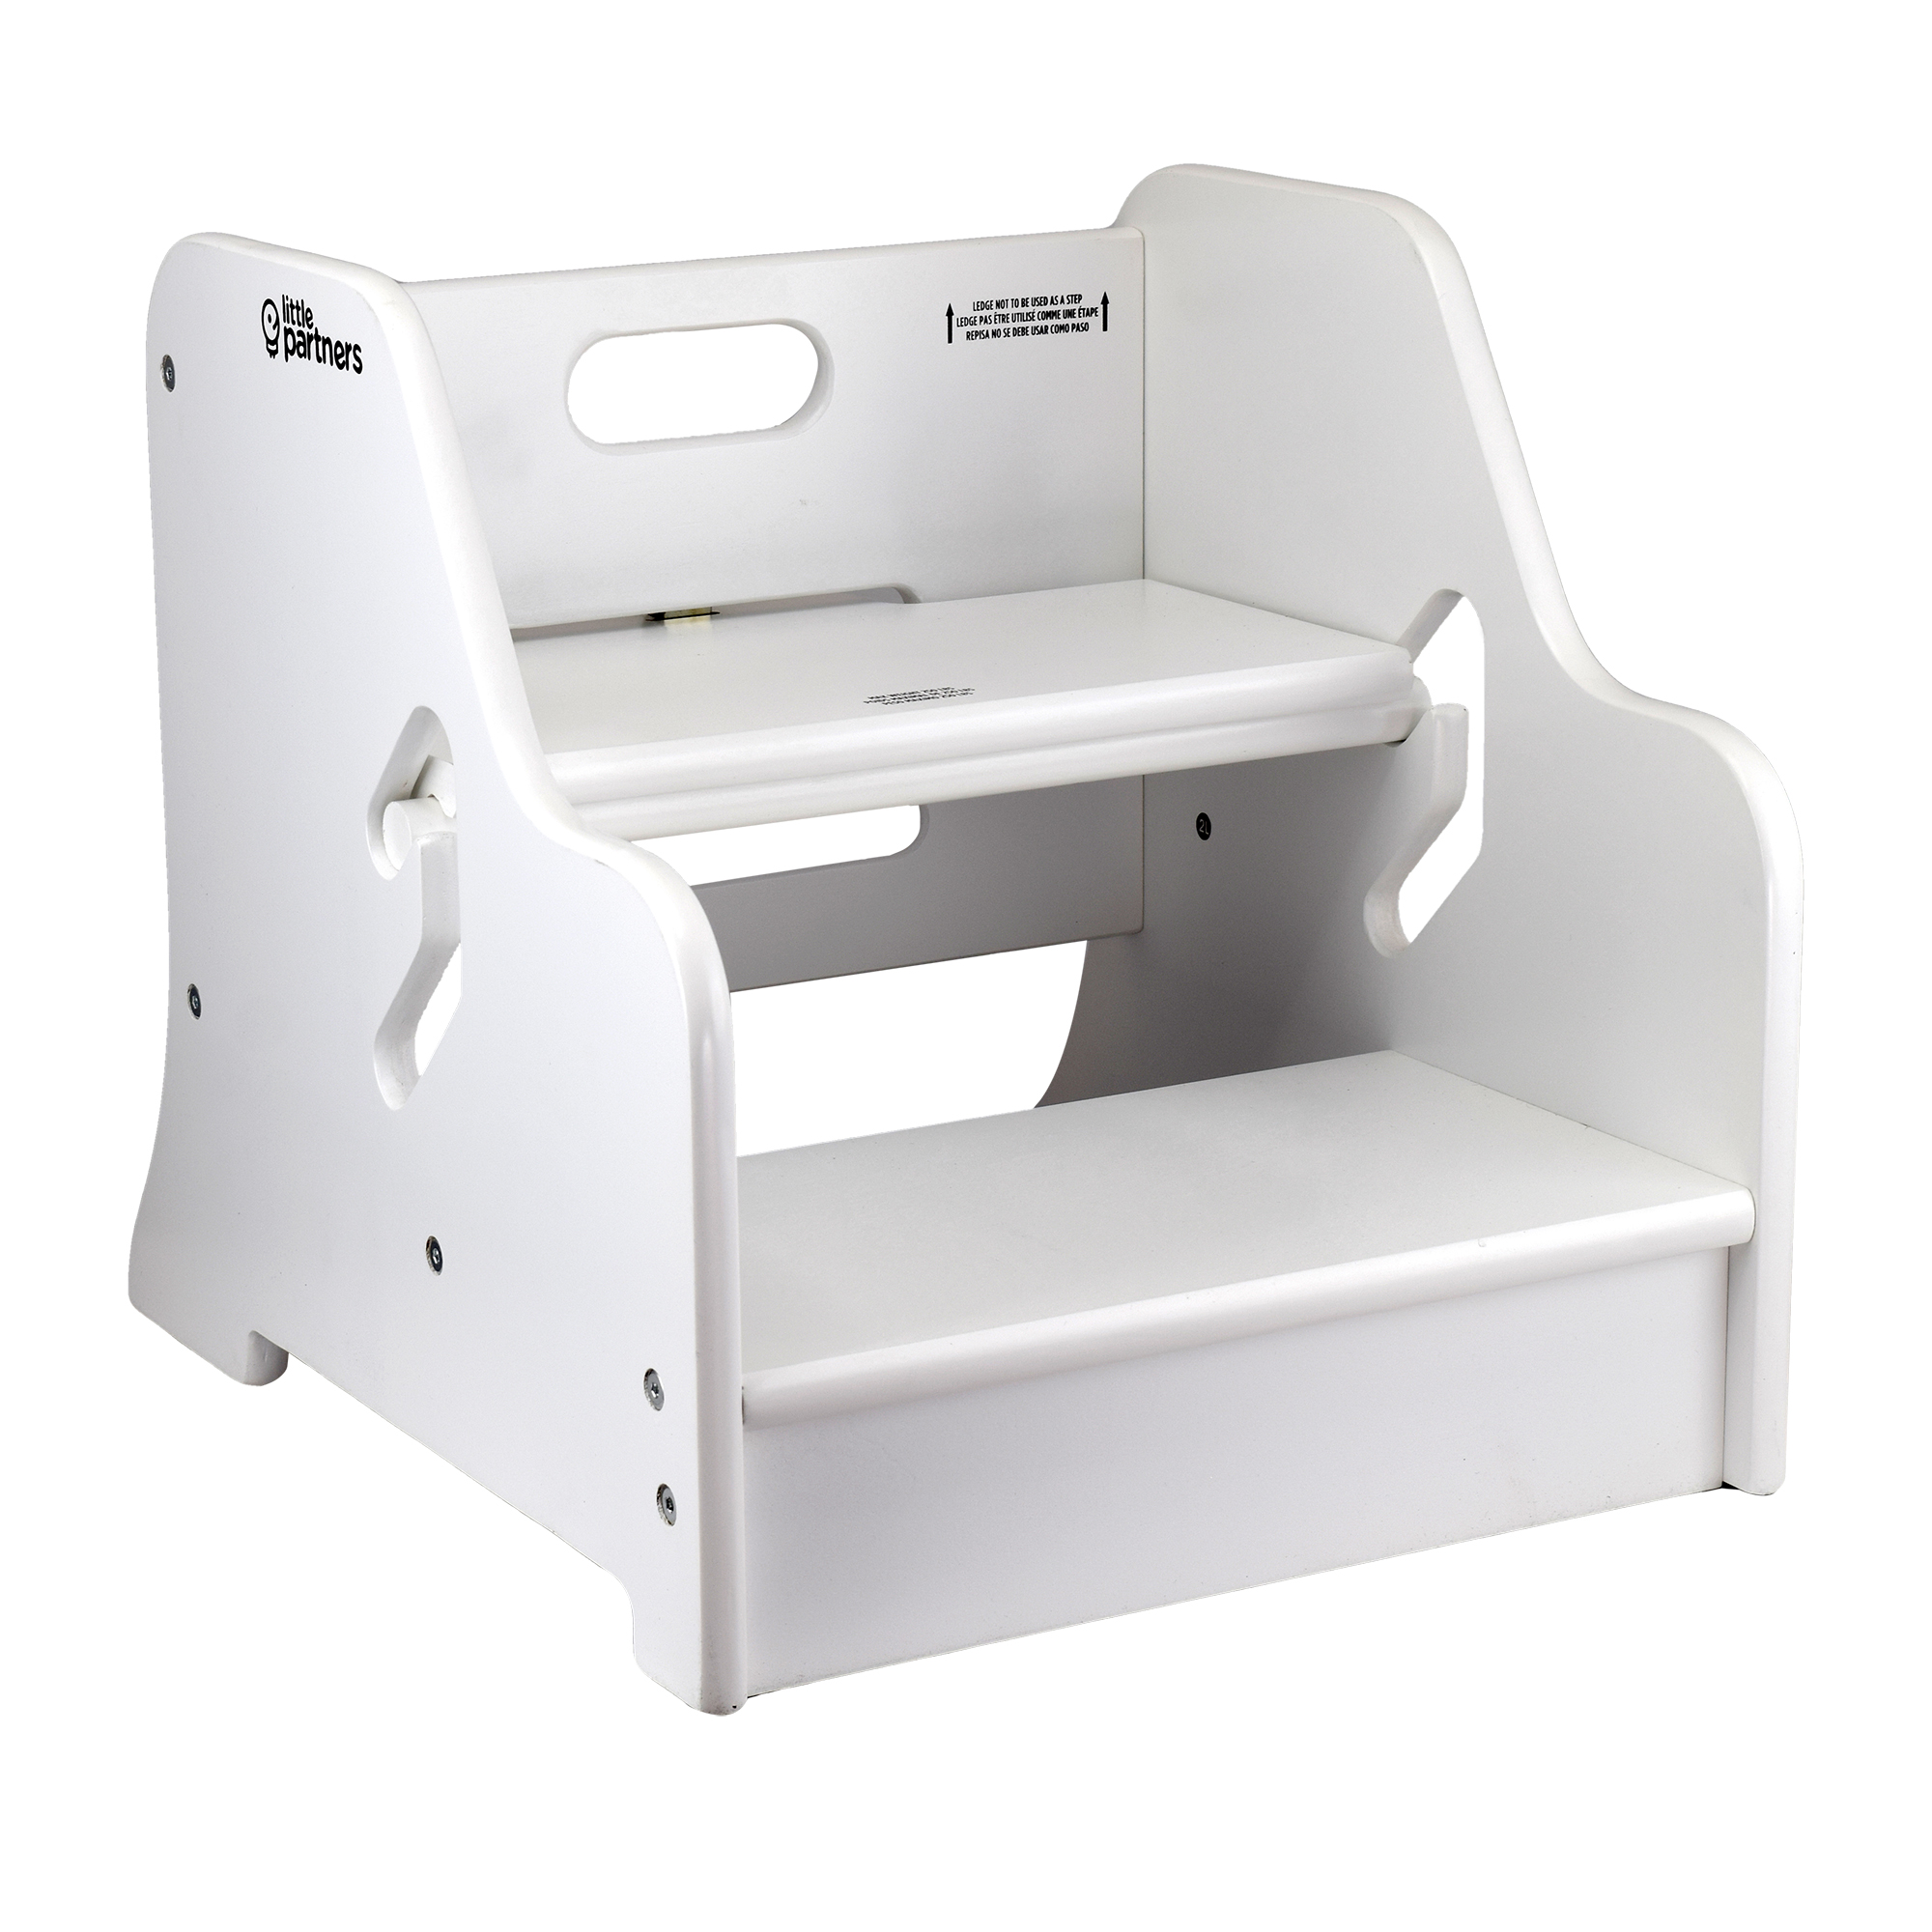 Step Up Step Stool by Little Partners